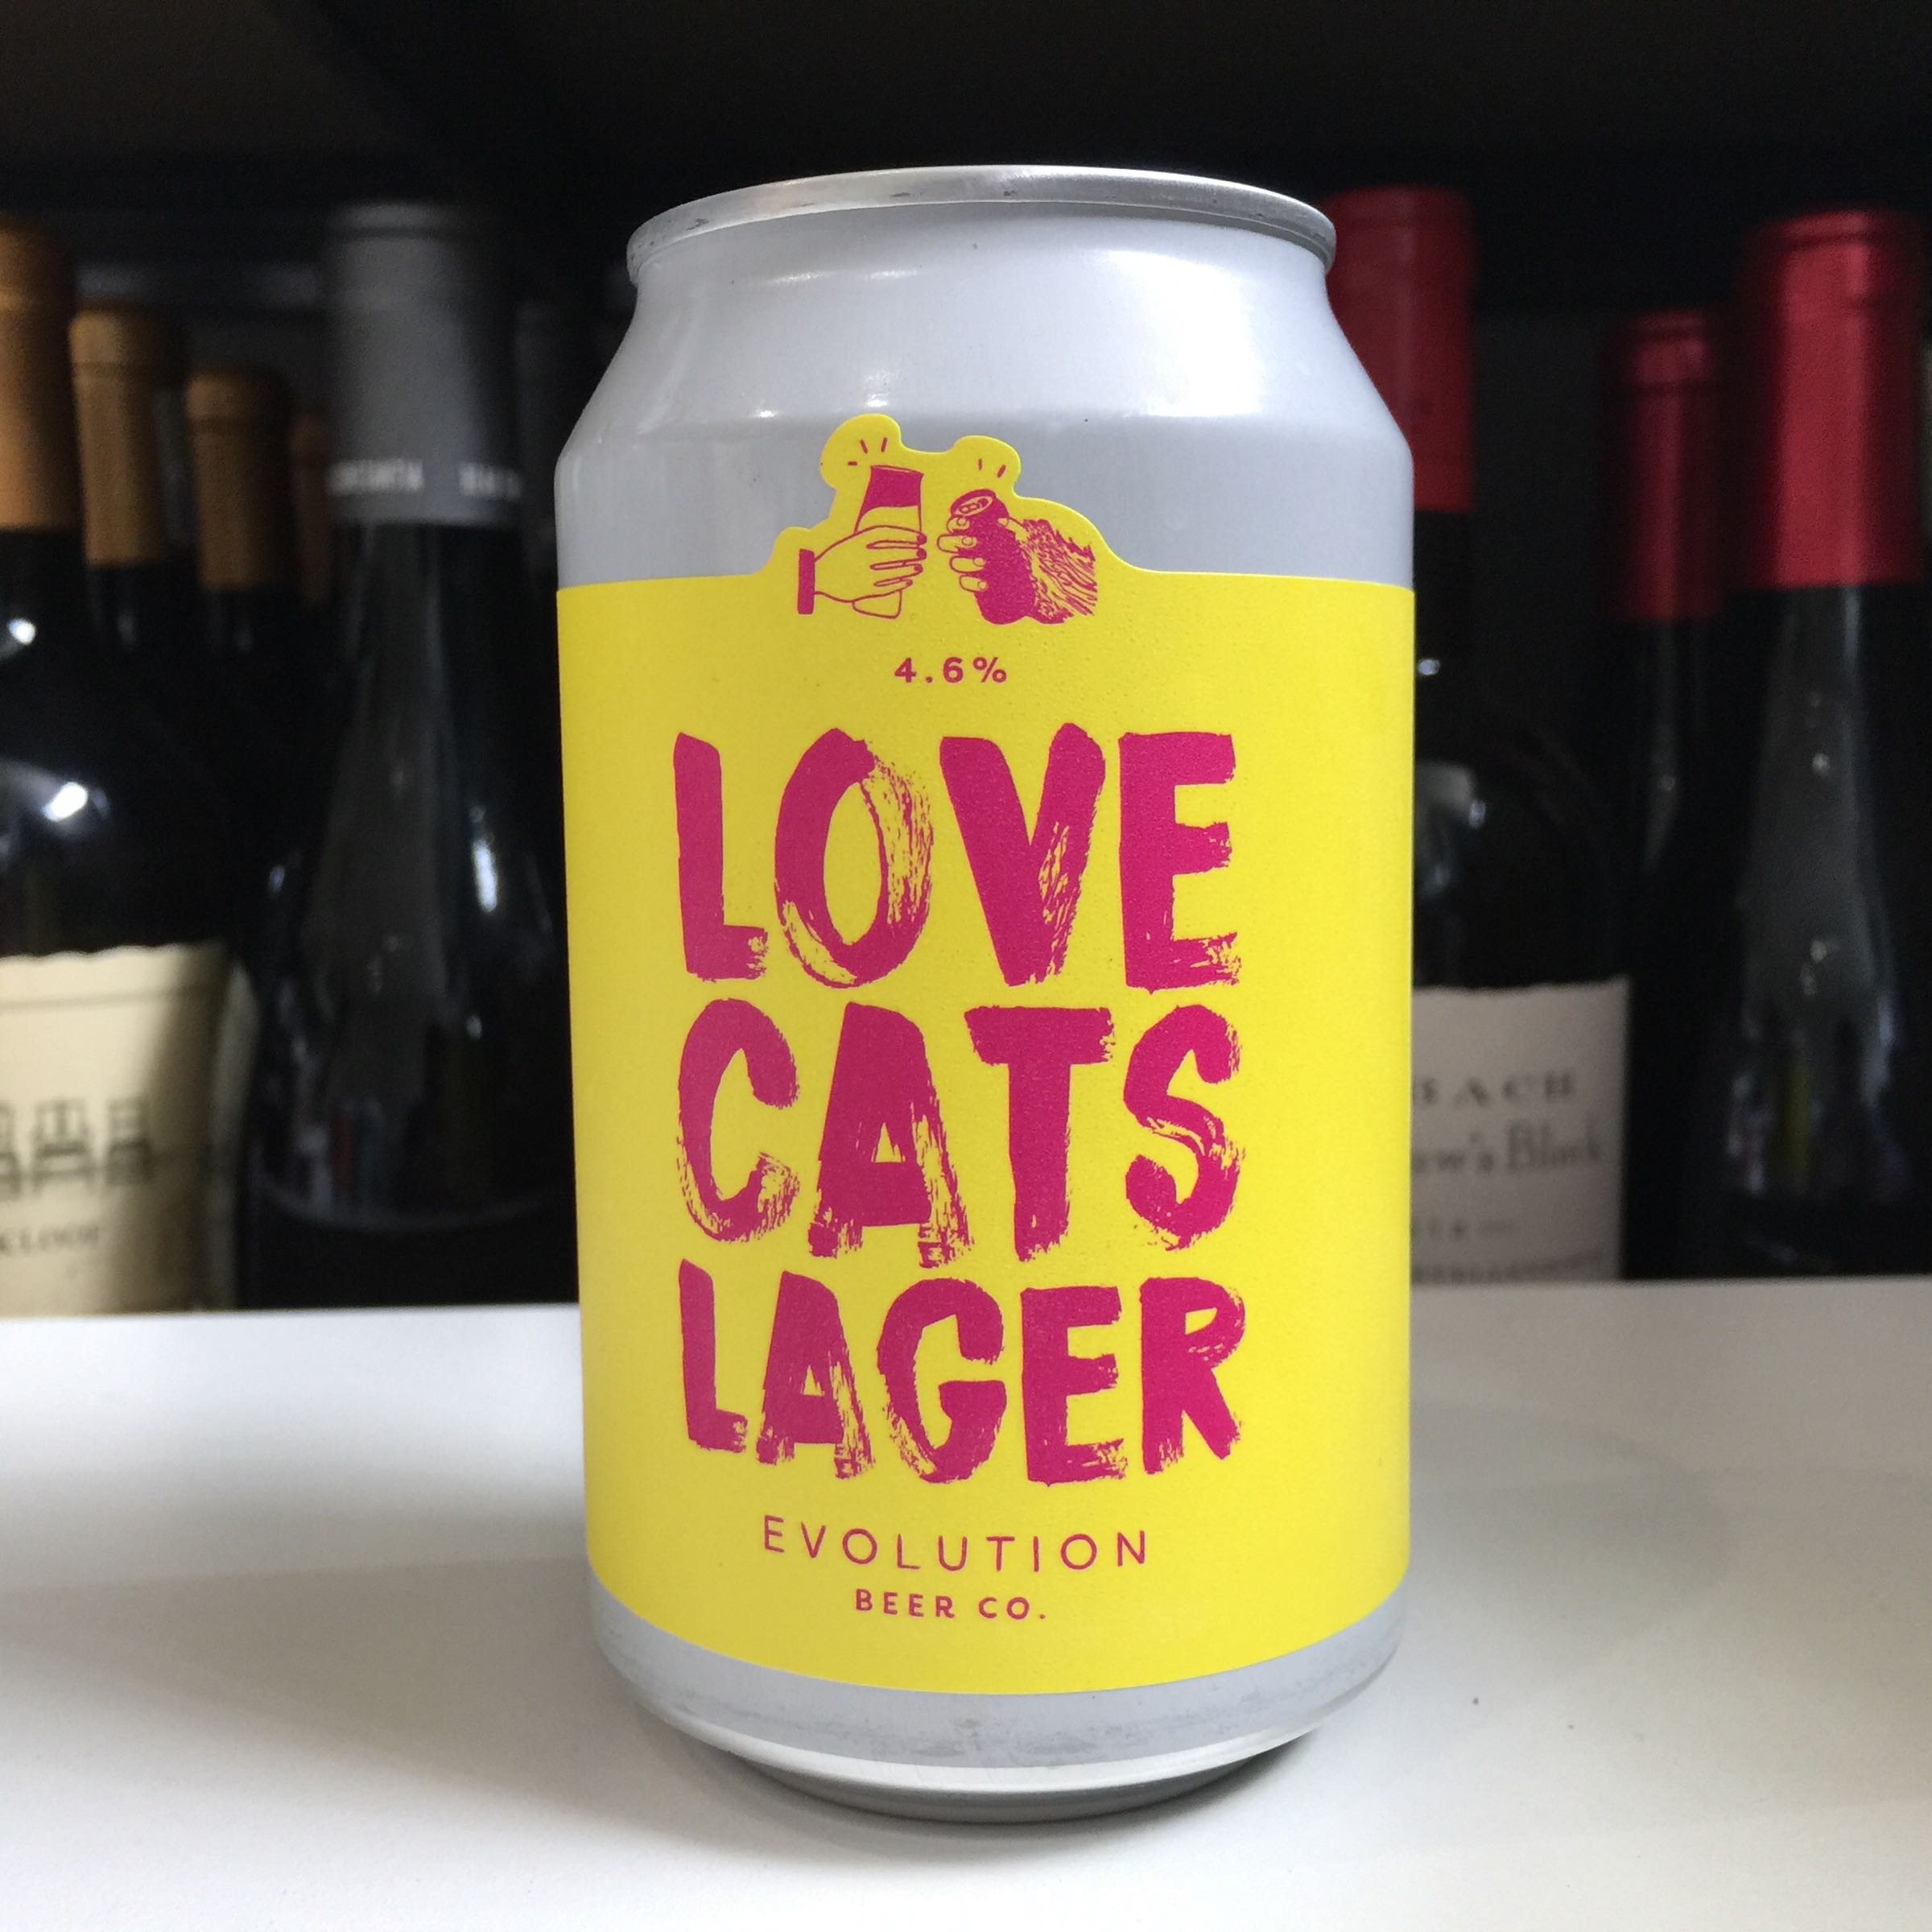 Evolution Beer 'Love Cats Lager' Lager 330ml 4.6% ABV